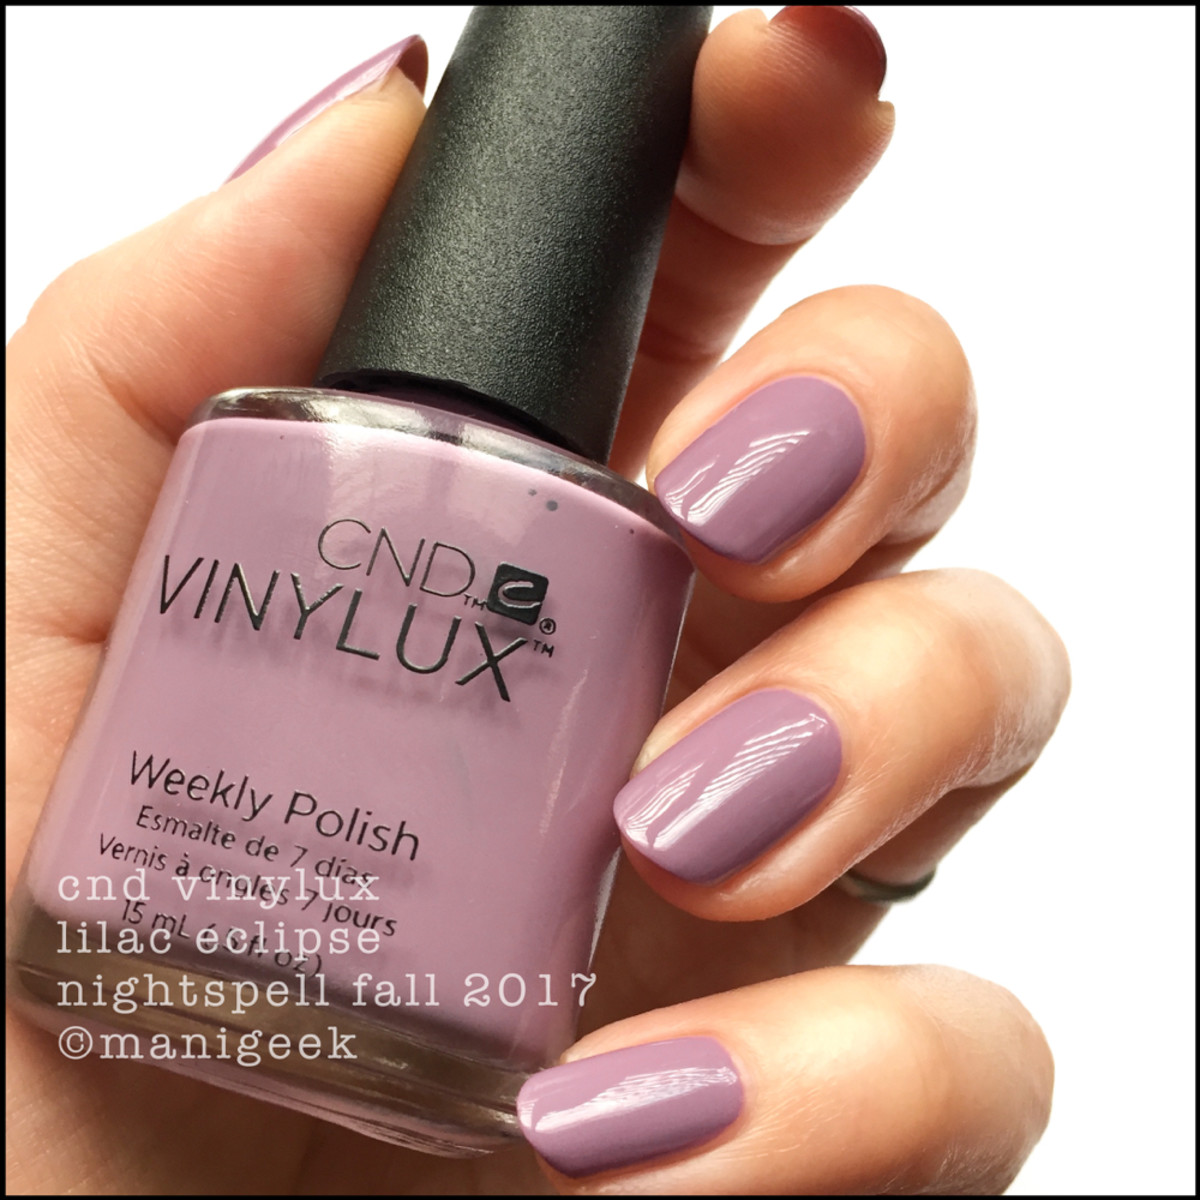 CND Vinylux Lilac Eclipse - CND Vinylux Nightspell Fall 2017 Collection Swatches